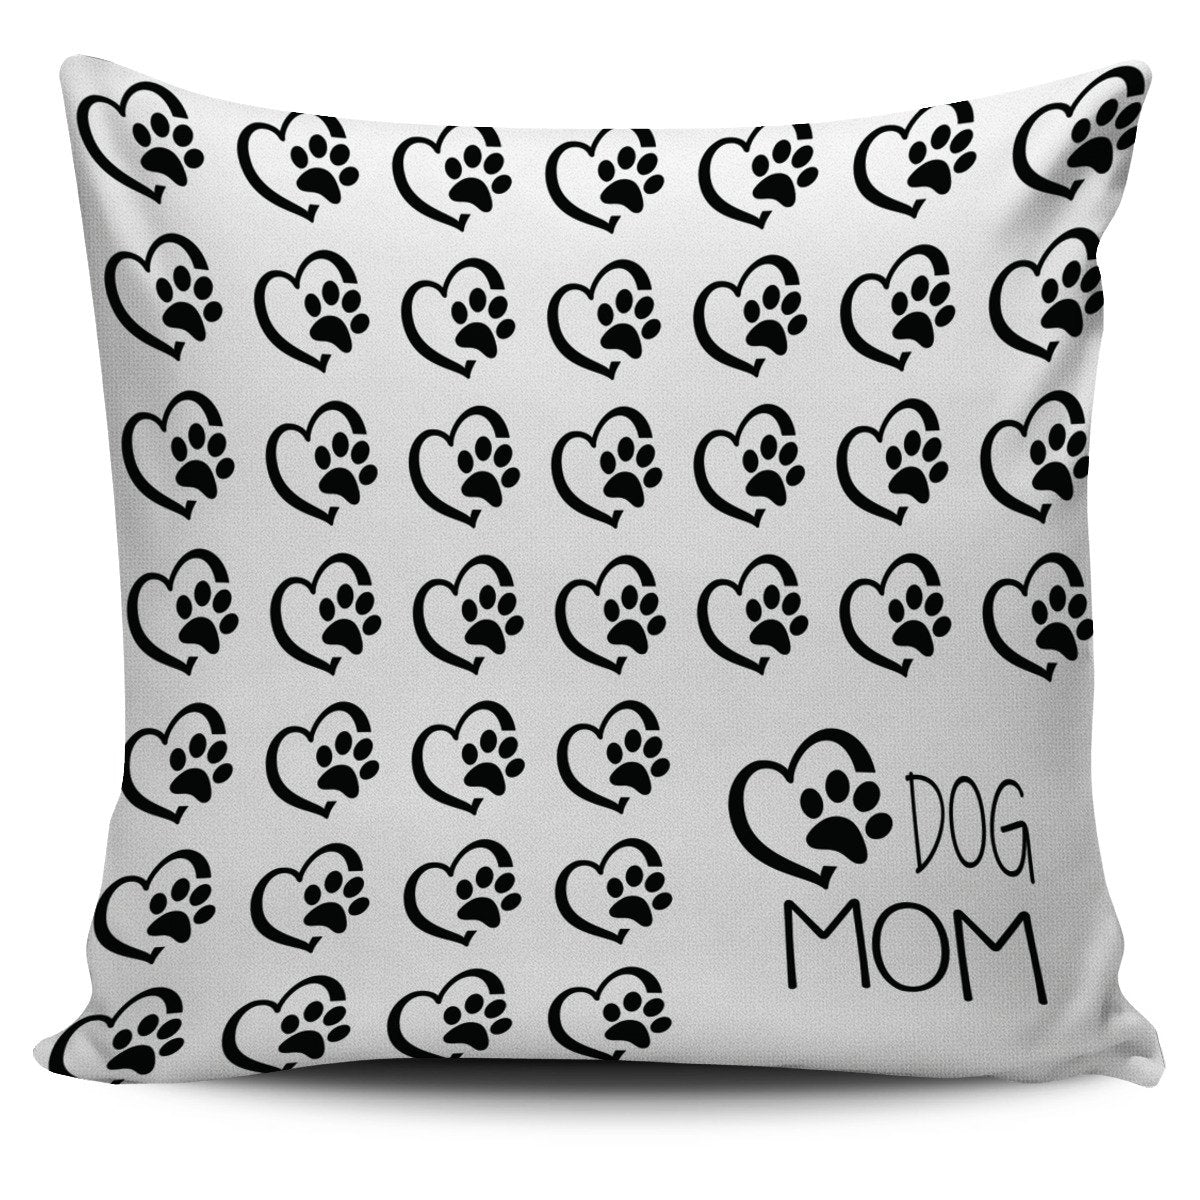 Love Dog Mom Pillow Cover-DogsTailCircle